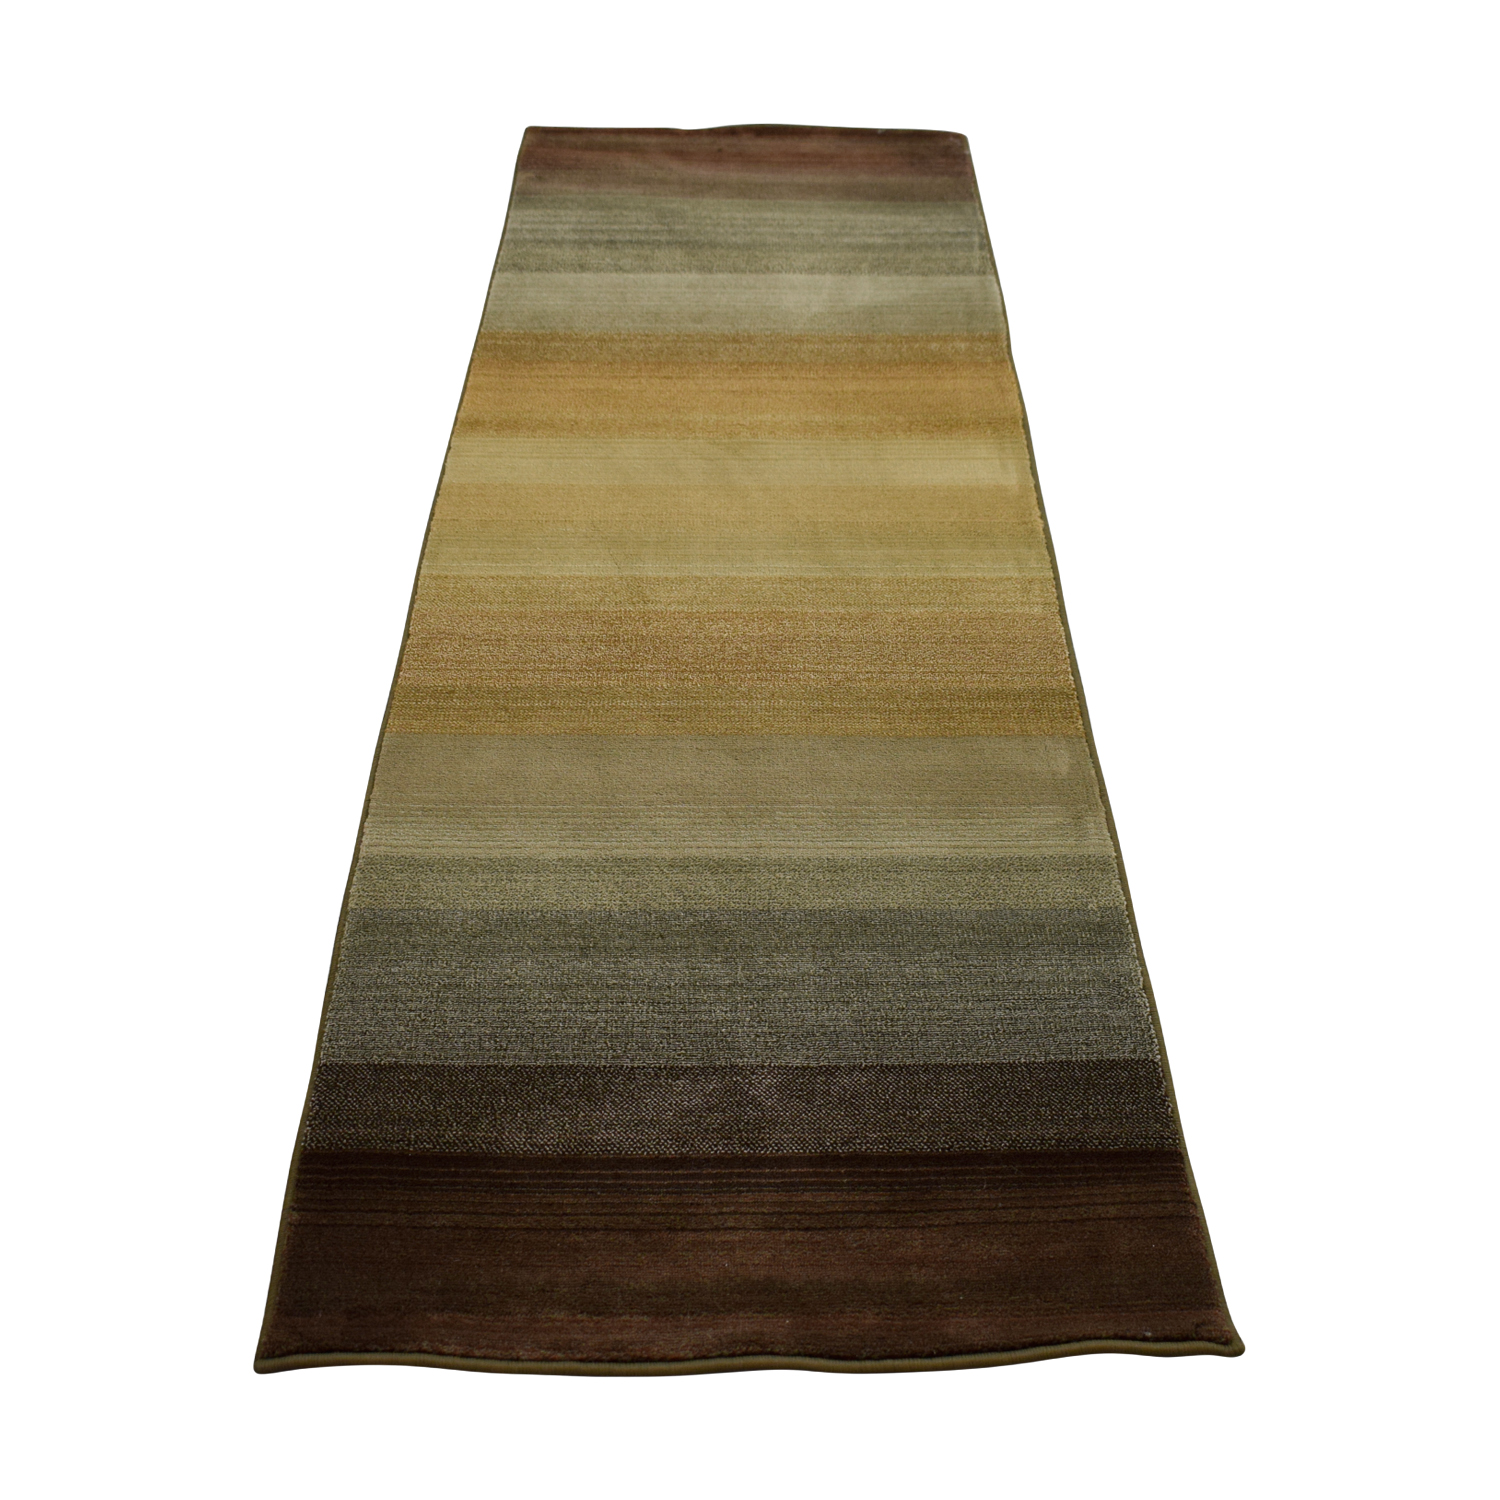 Macy's Macy's Multi-Colored Runner Rug dimensions